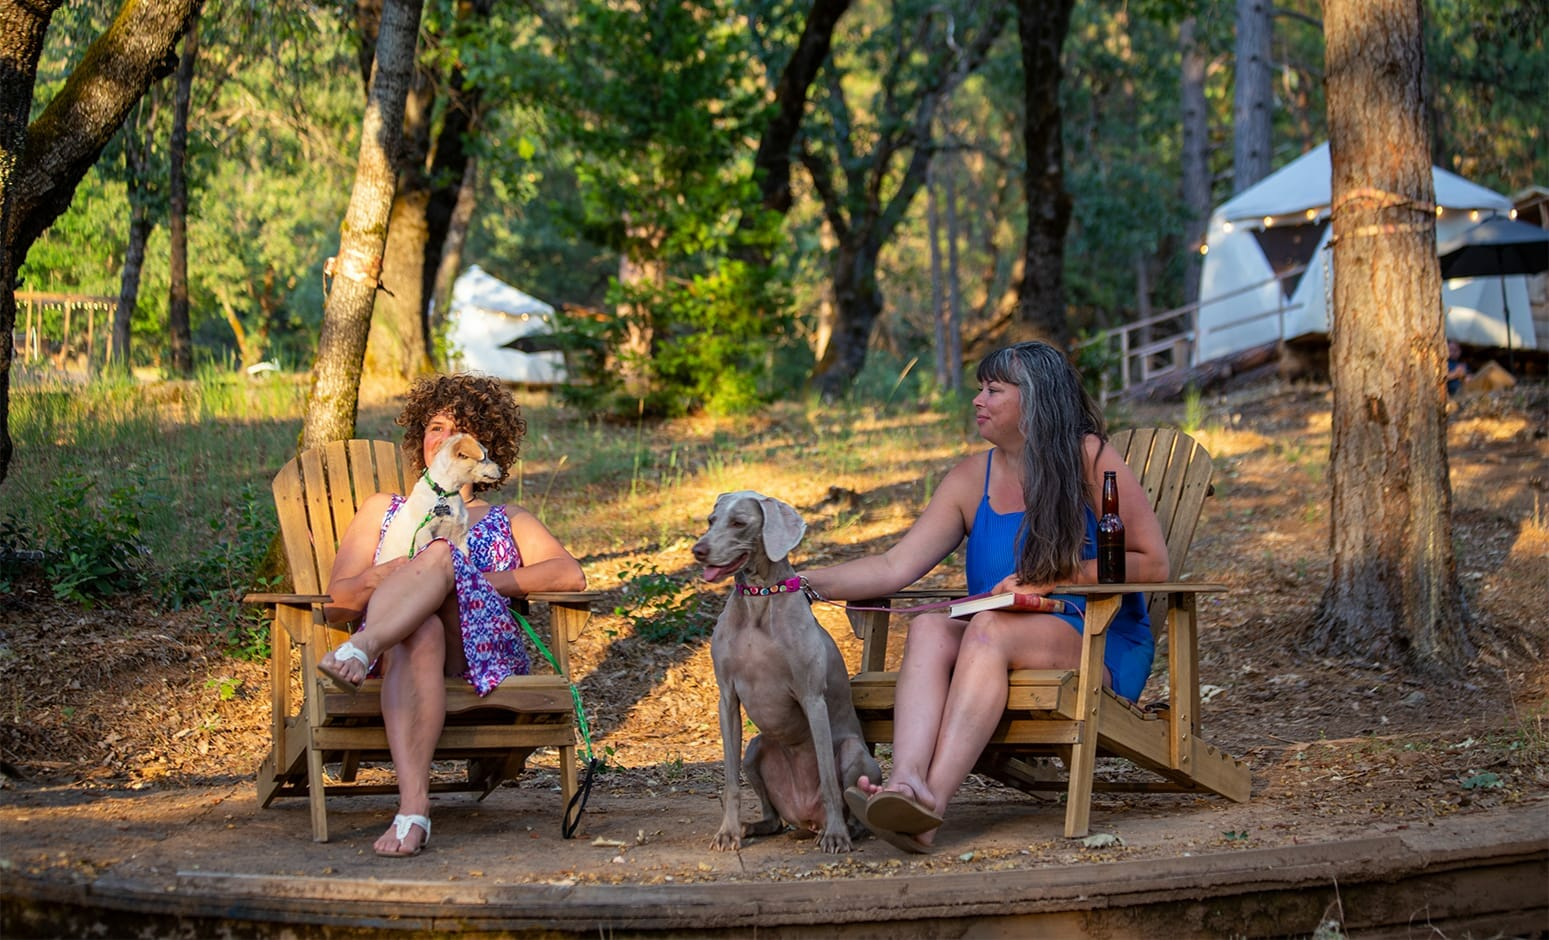 Two women sitting on the outdoor reclined chairs with two dogs